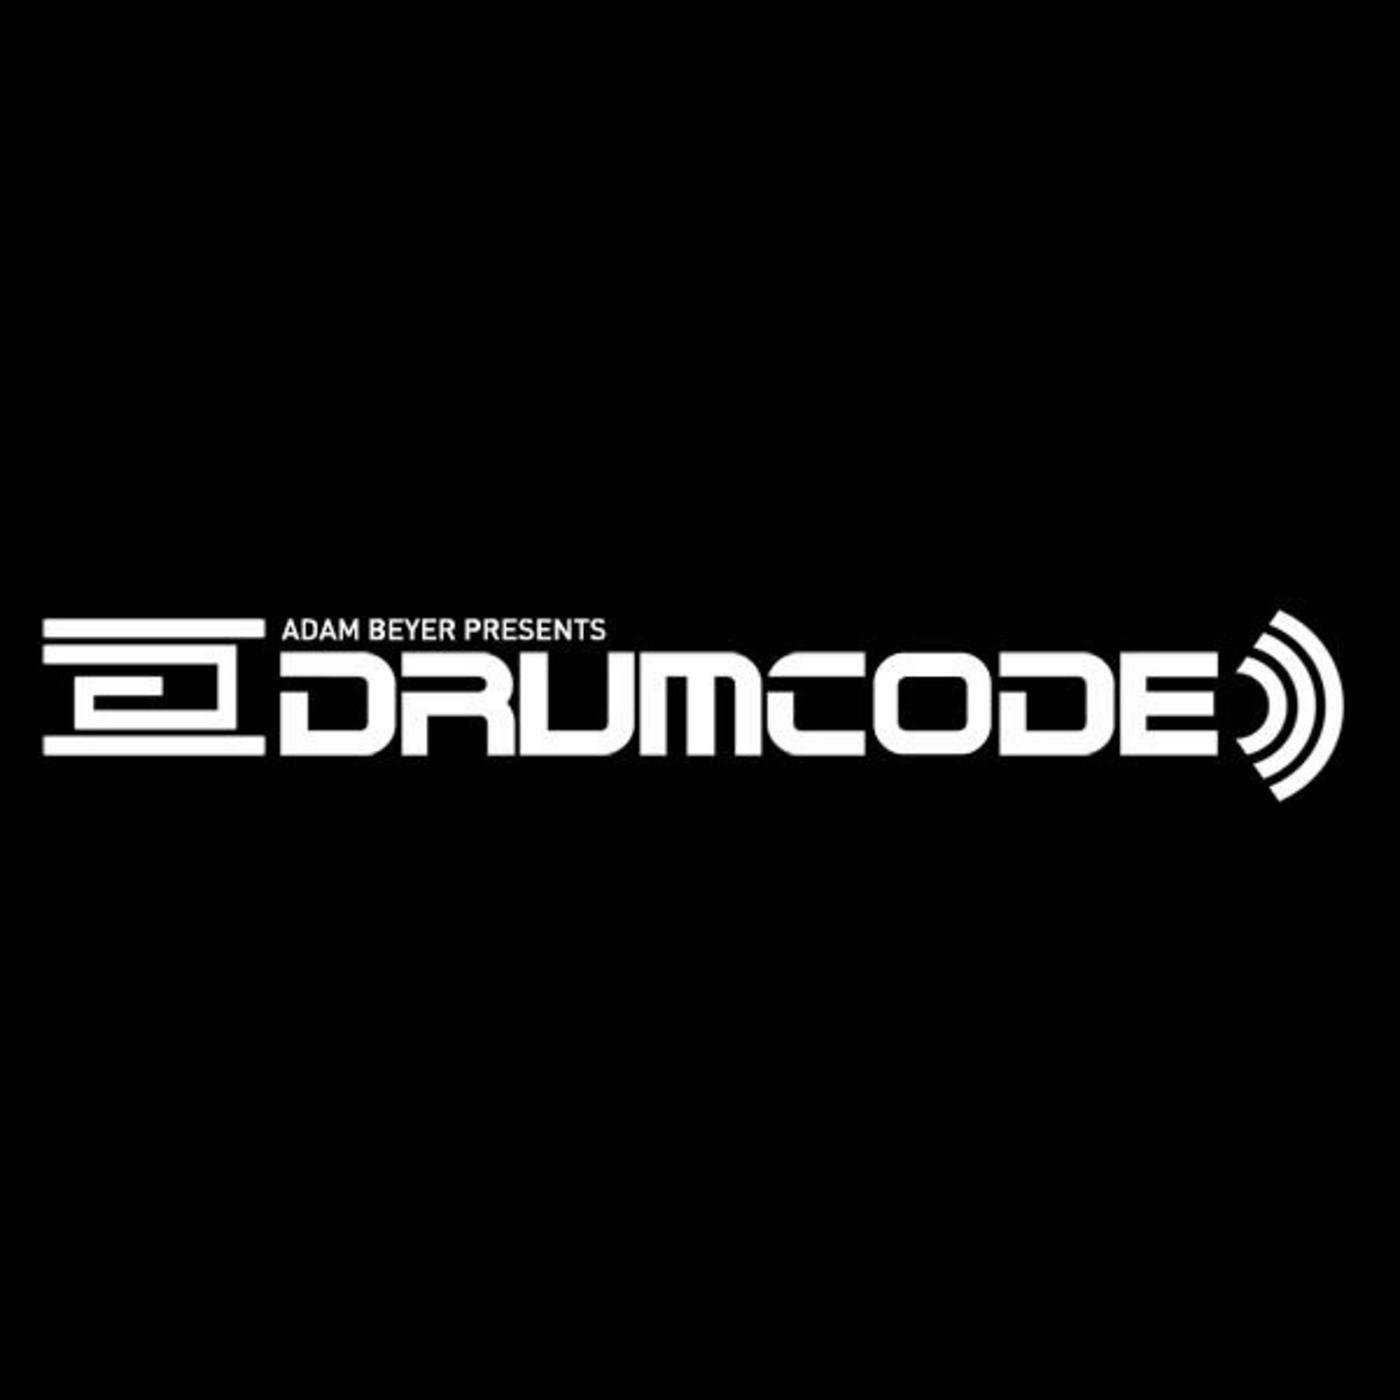 Adam Beyer presents Drumcode